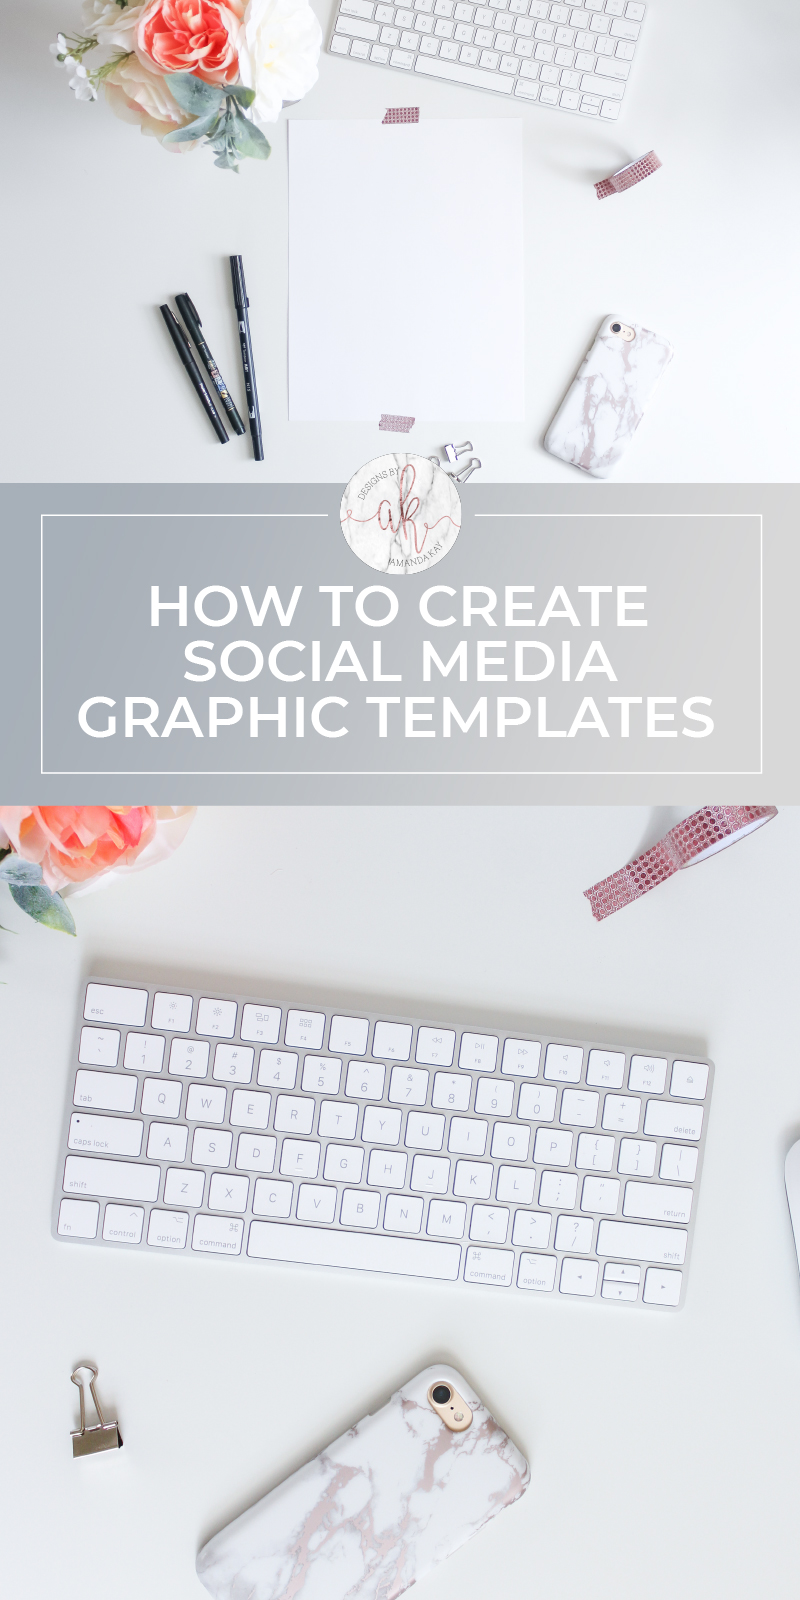 How to Create Social Media Templates using Adobe Illustrator